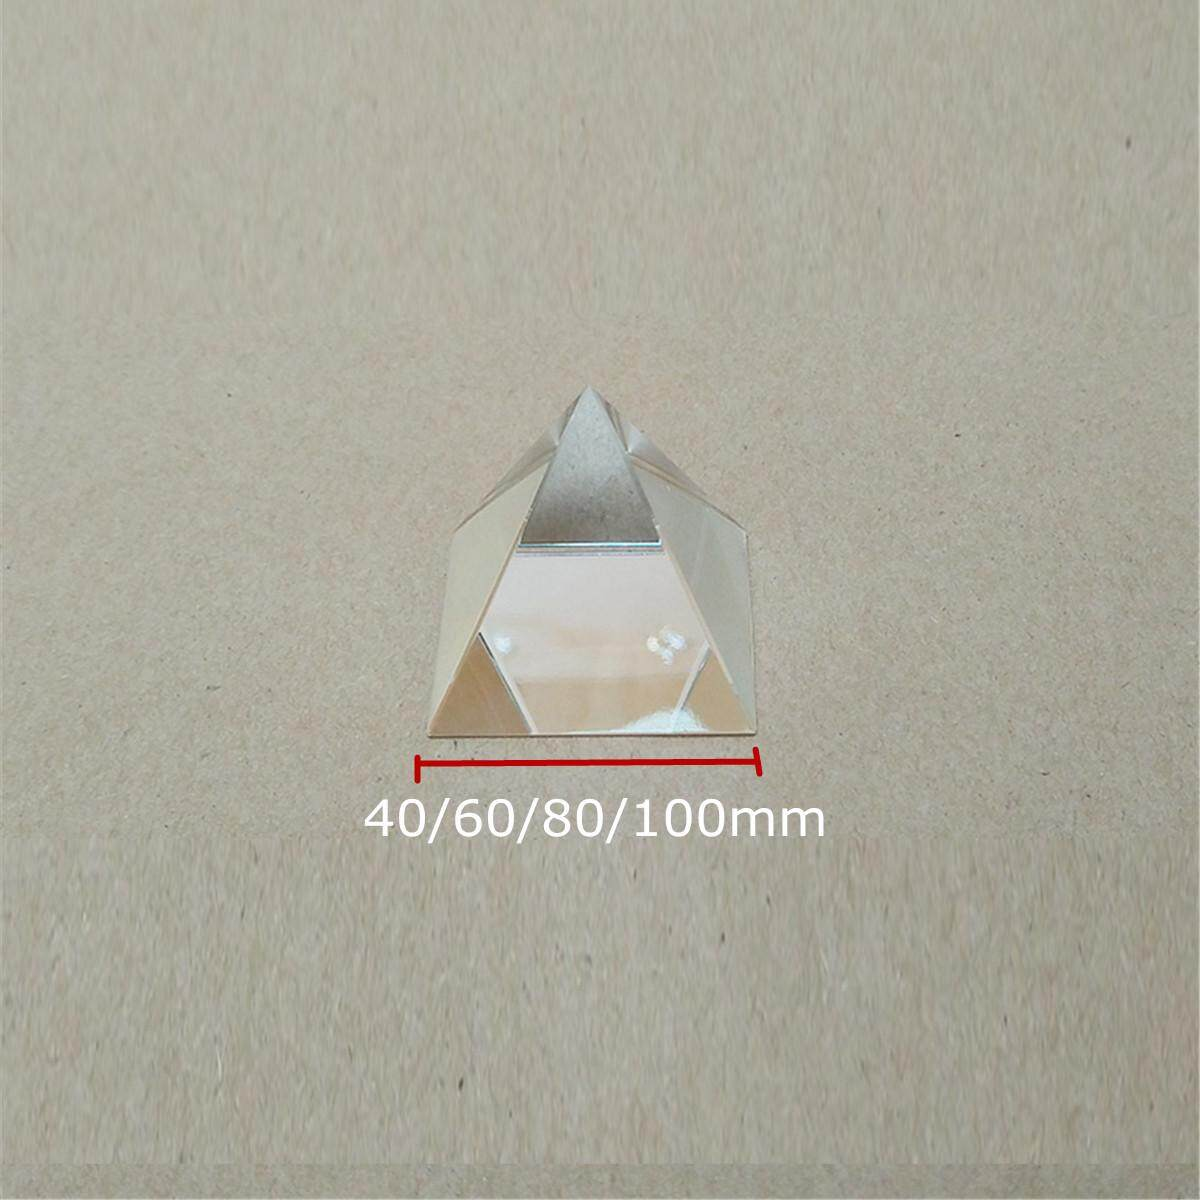 40mm Optical Glass Prism Beam Splitter Crystal Pyramid for Science Optics DIY#60mm - intl